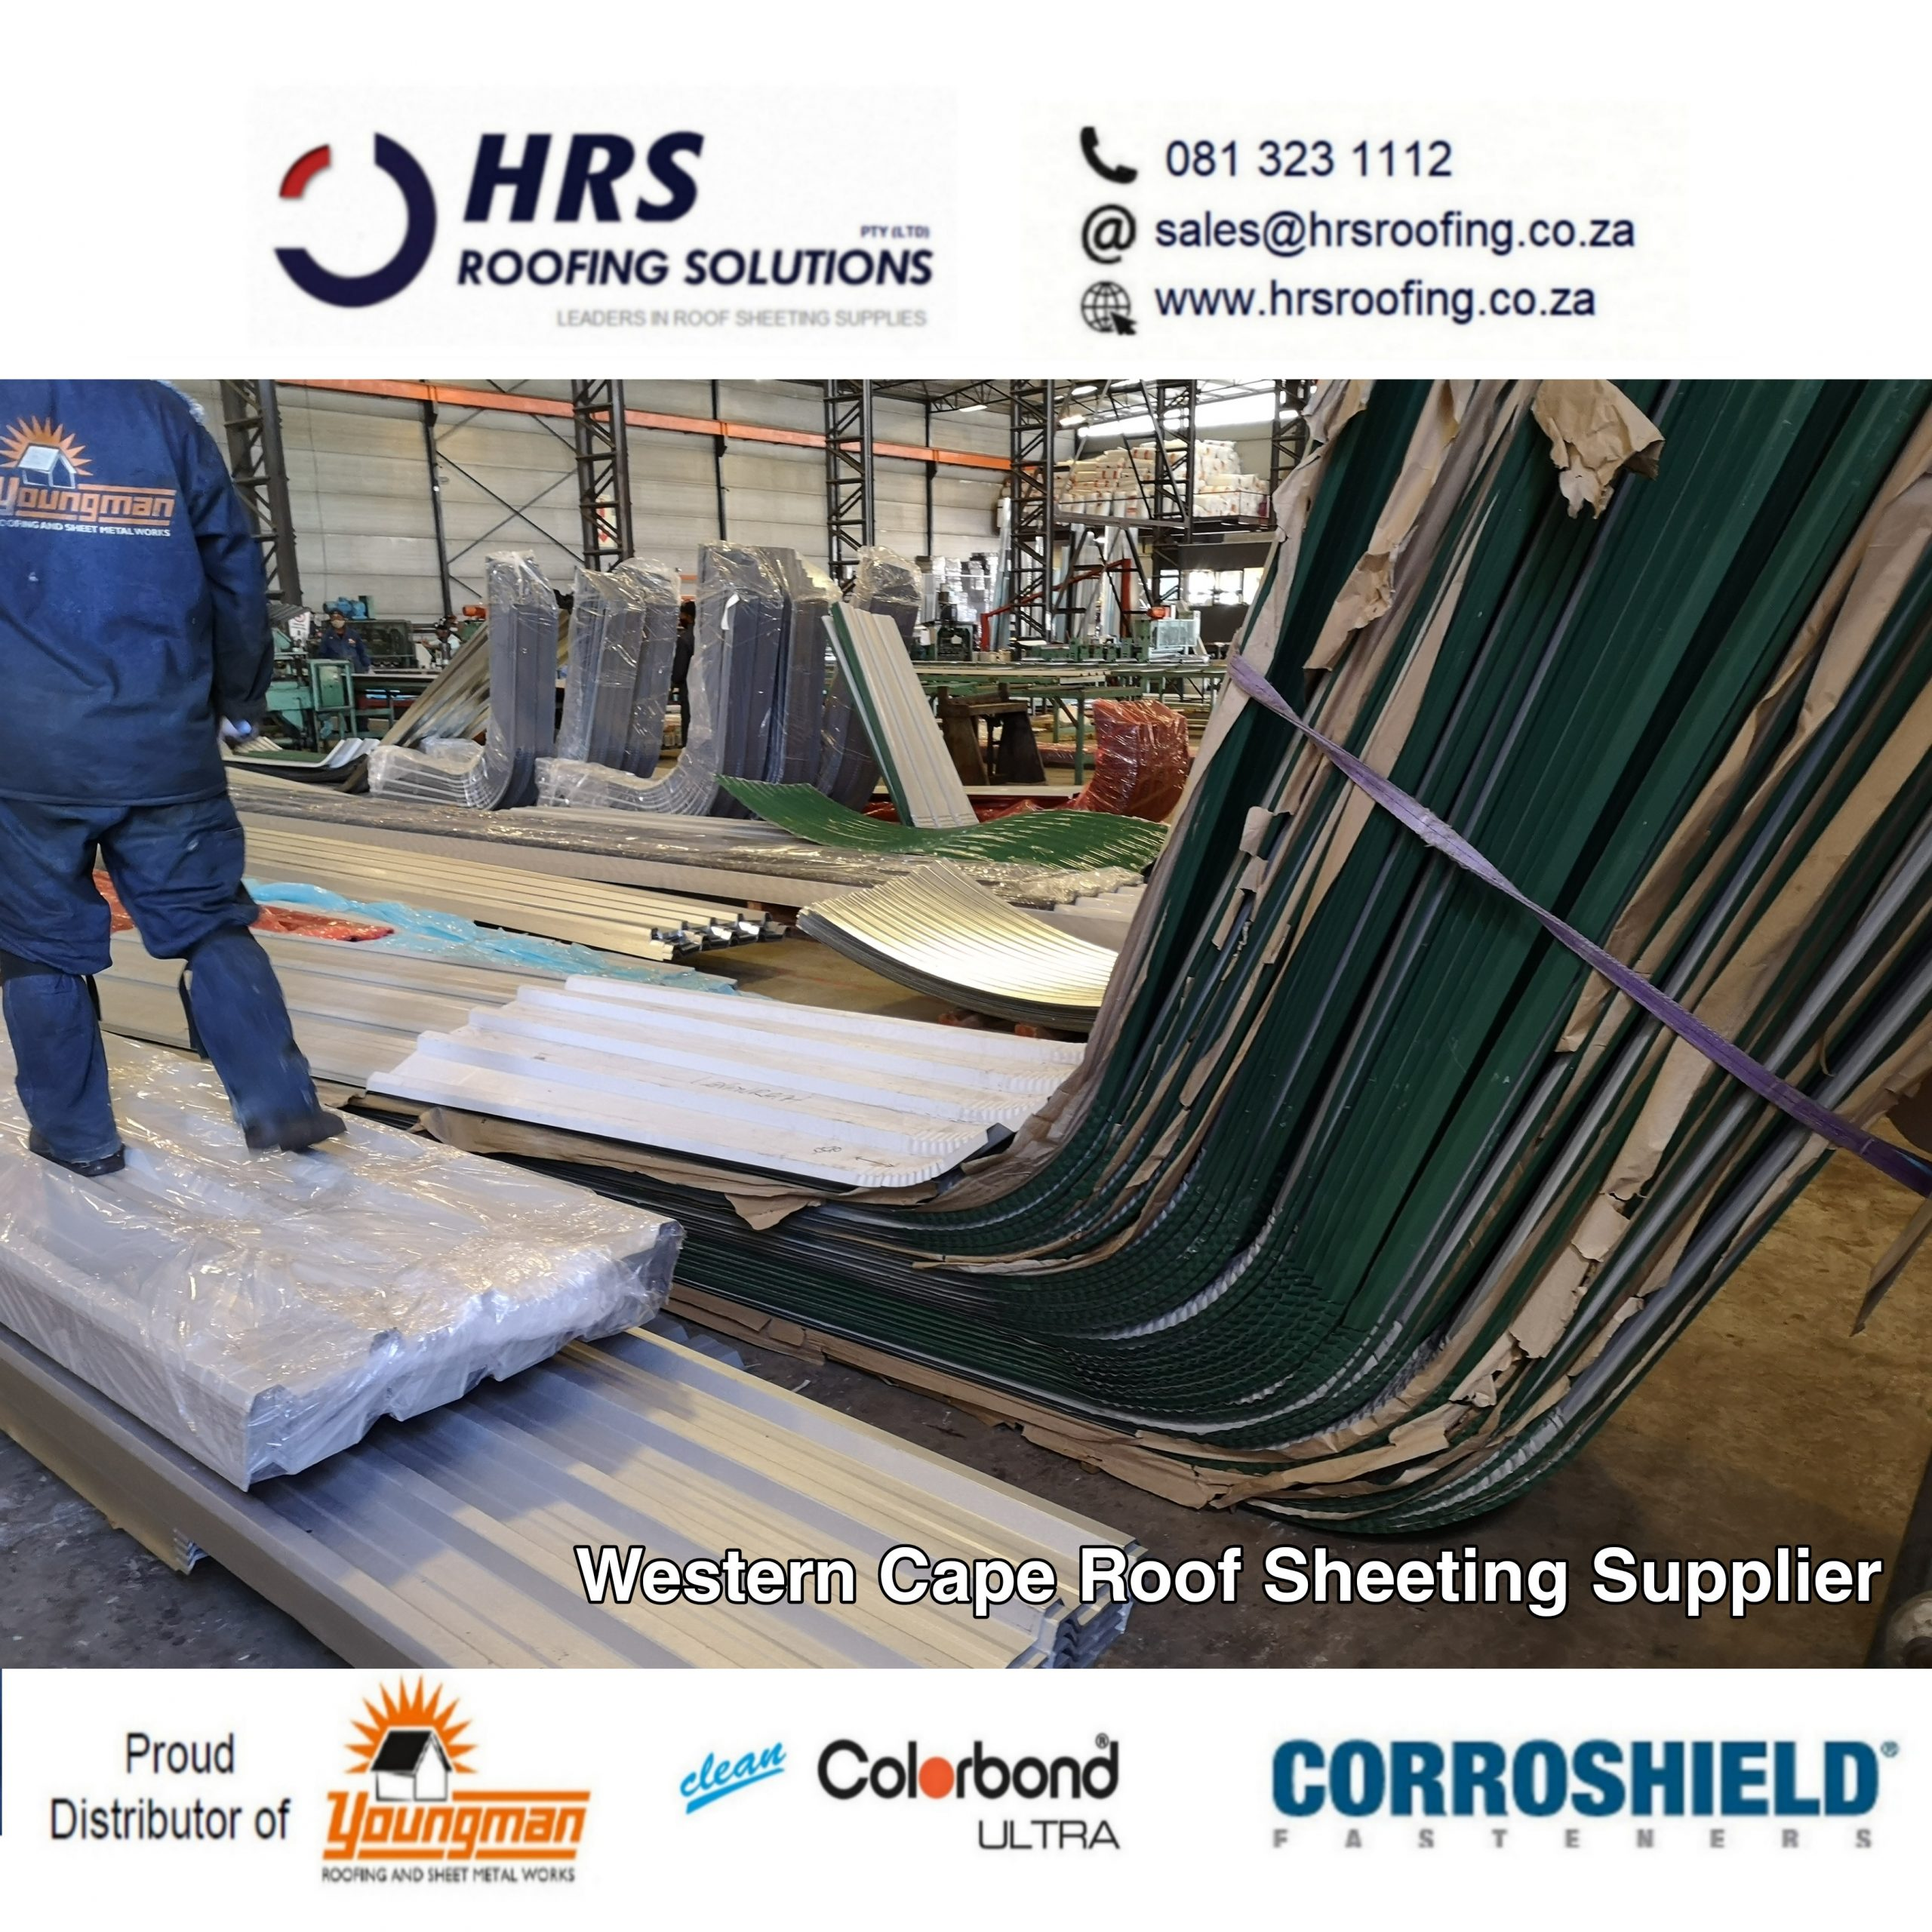 hrs roofing solutions ibr springlock 700 clip lock colorbond roof sheet supplier 3 scaled - Roofing Gallery